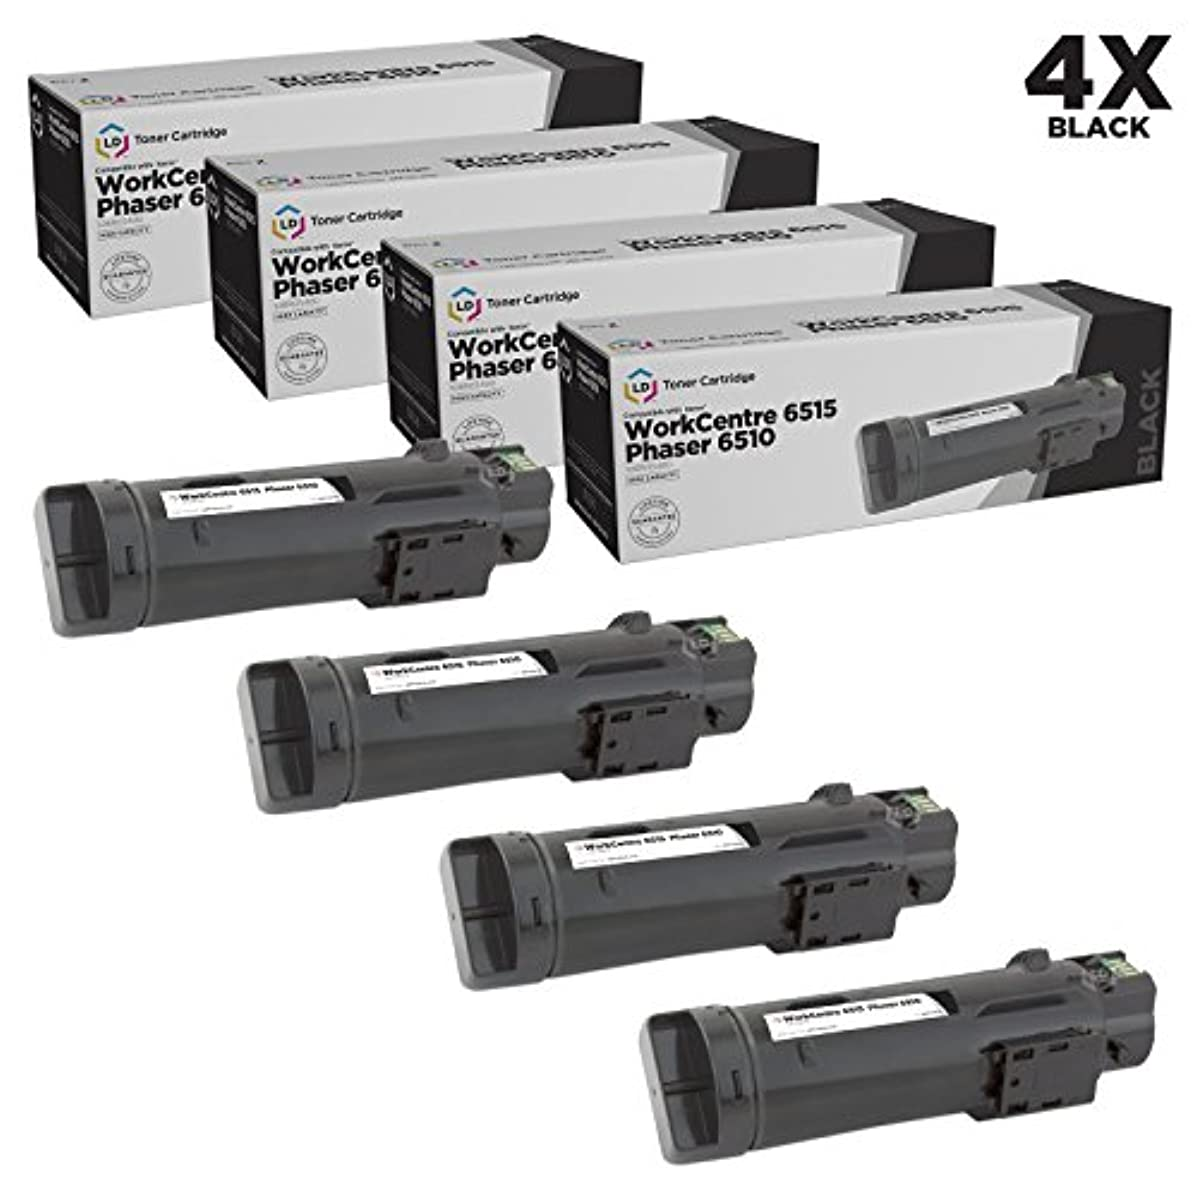 LD Compatible Toner Cartridge Replacement for Xerox Phaser 6510 & WorkCentre 6515 High Yield (Black, 4-Pack)